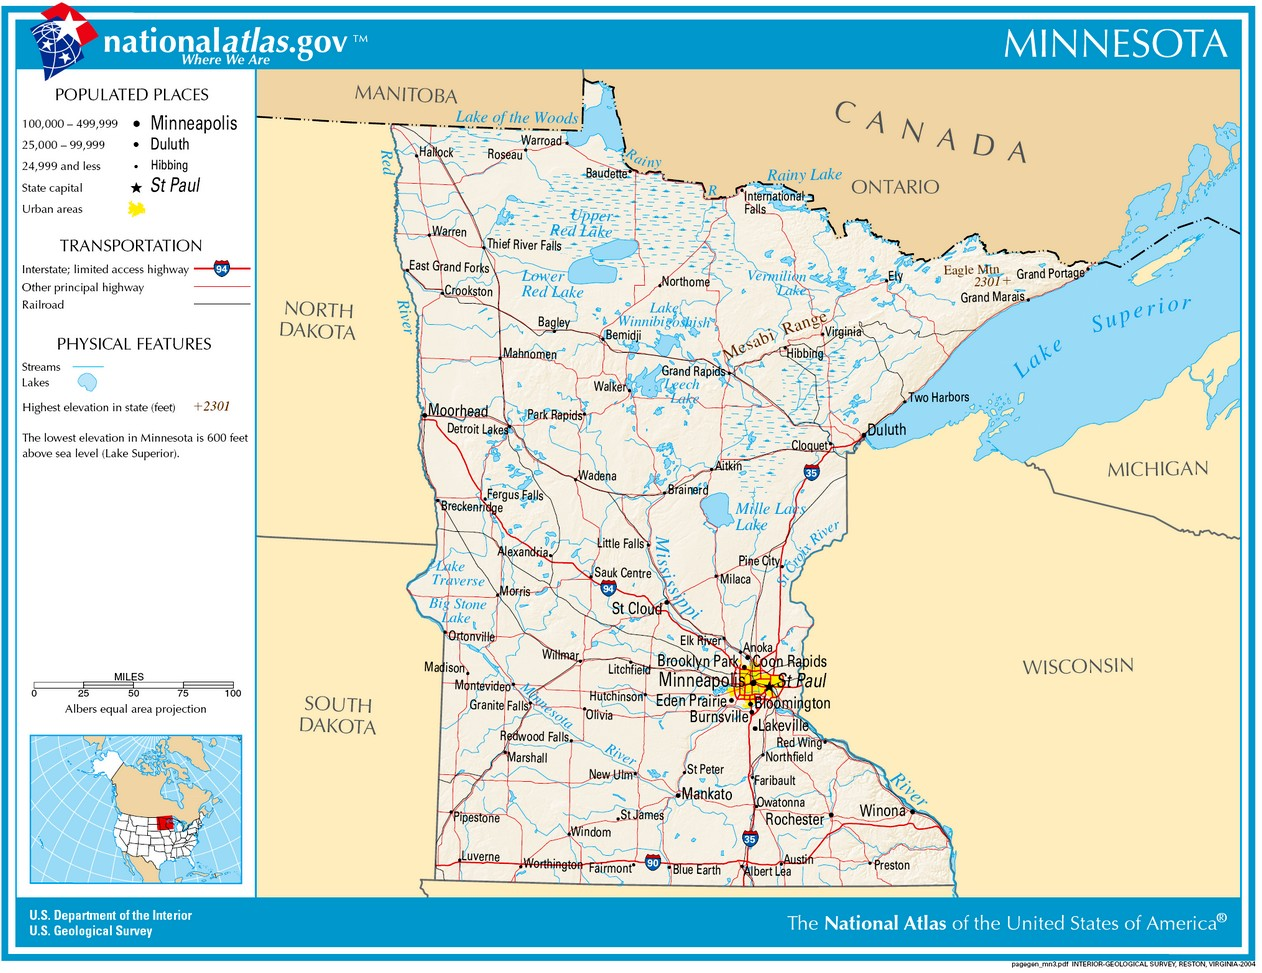 High Resolution Map of Minnesota.jpg